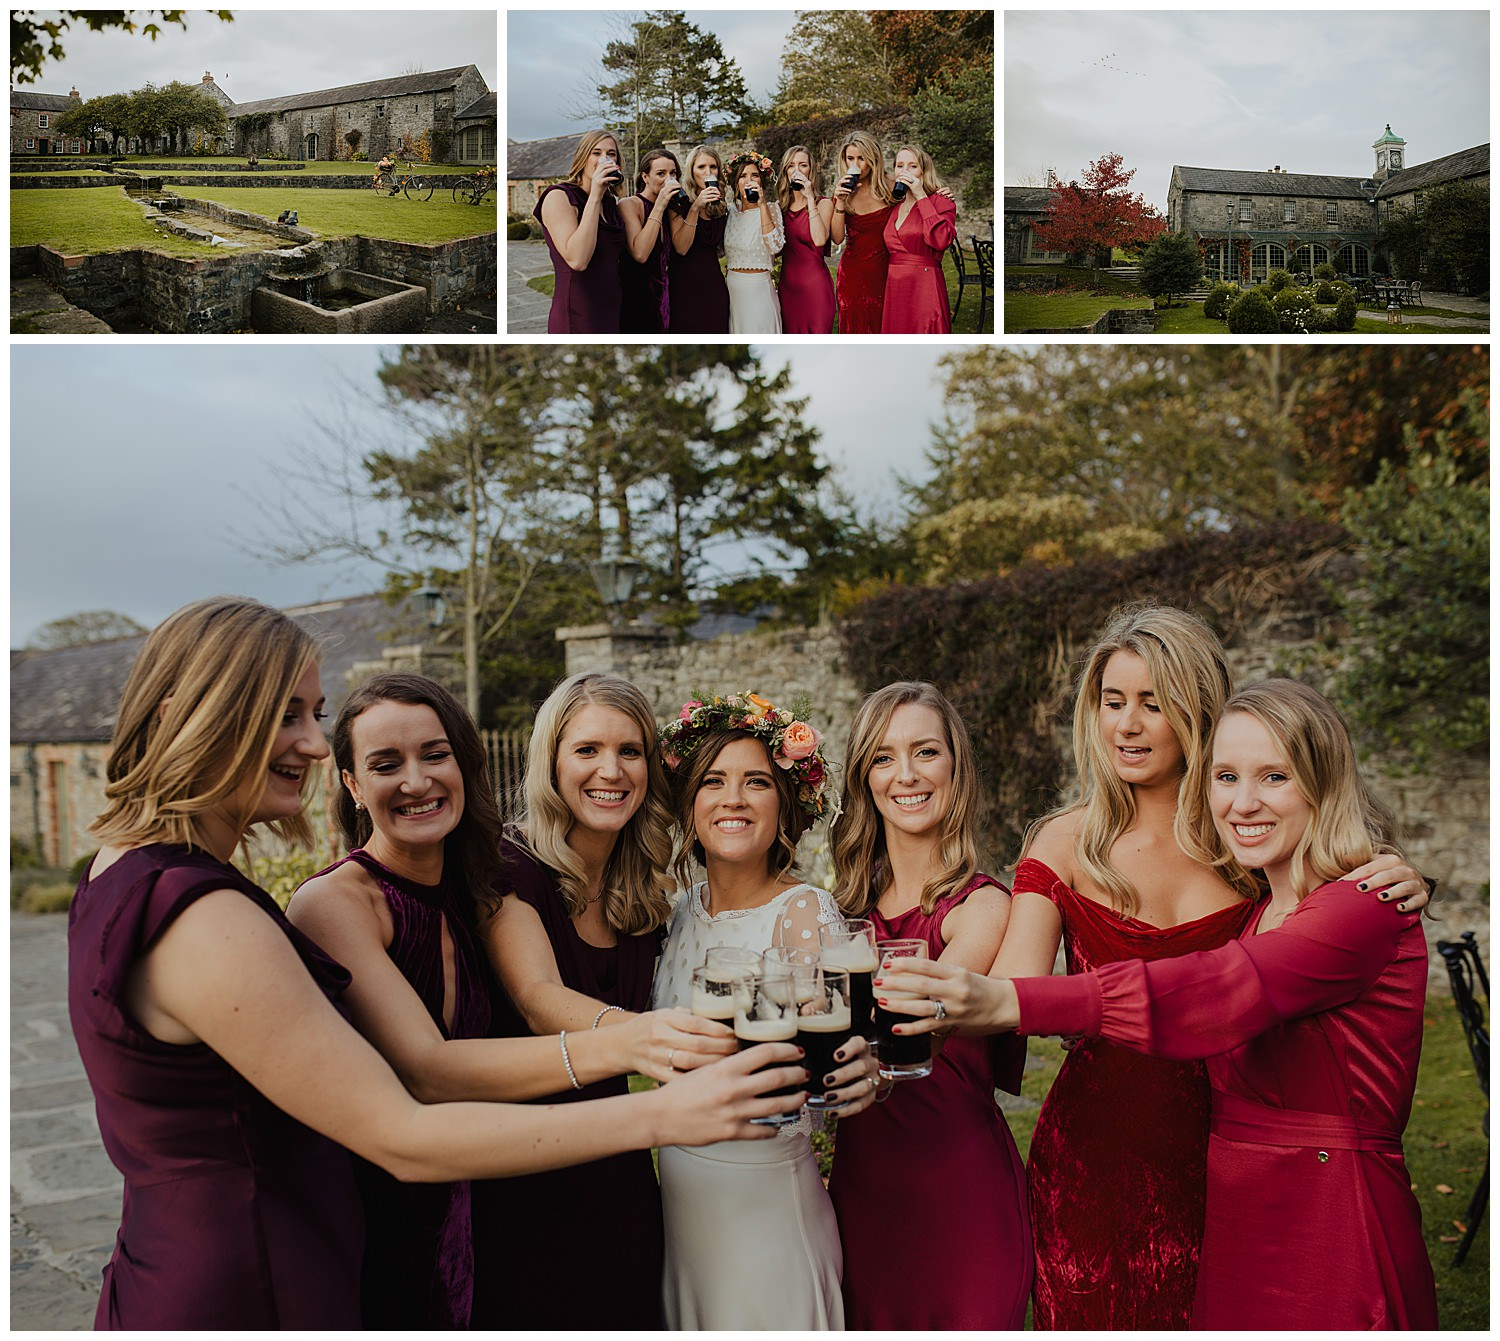 a+s_ballymagarvey_village_wedding_photographer_livia_figueiredo_44.jpg